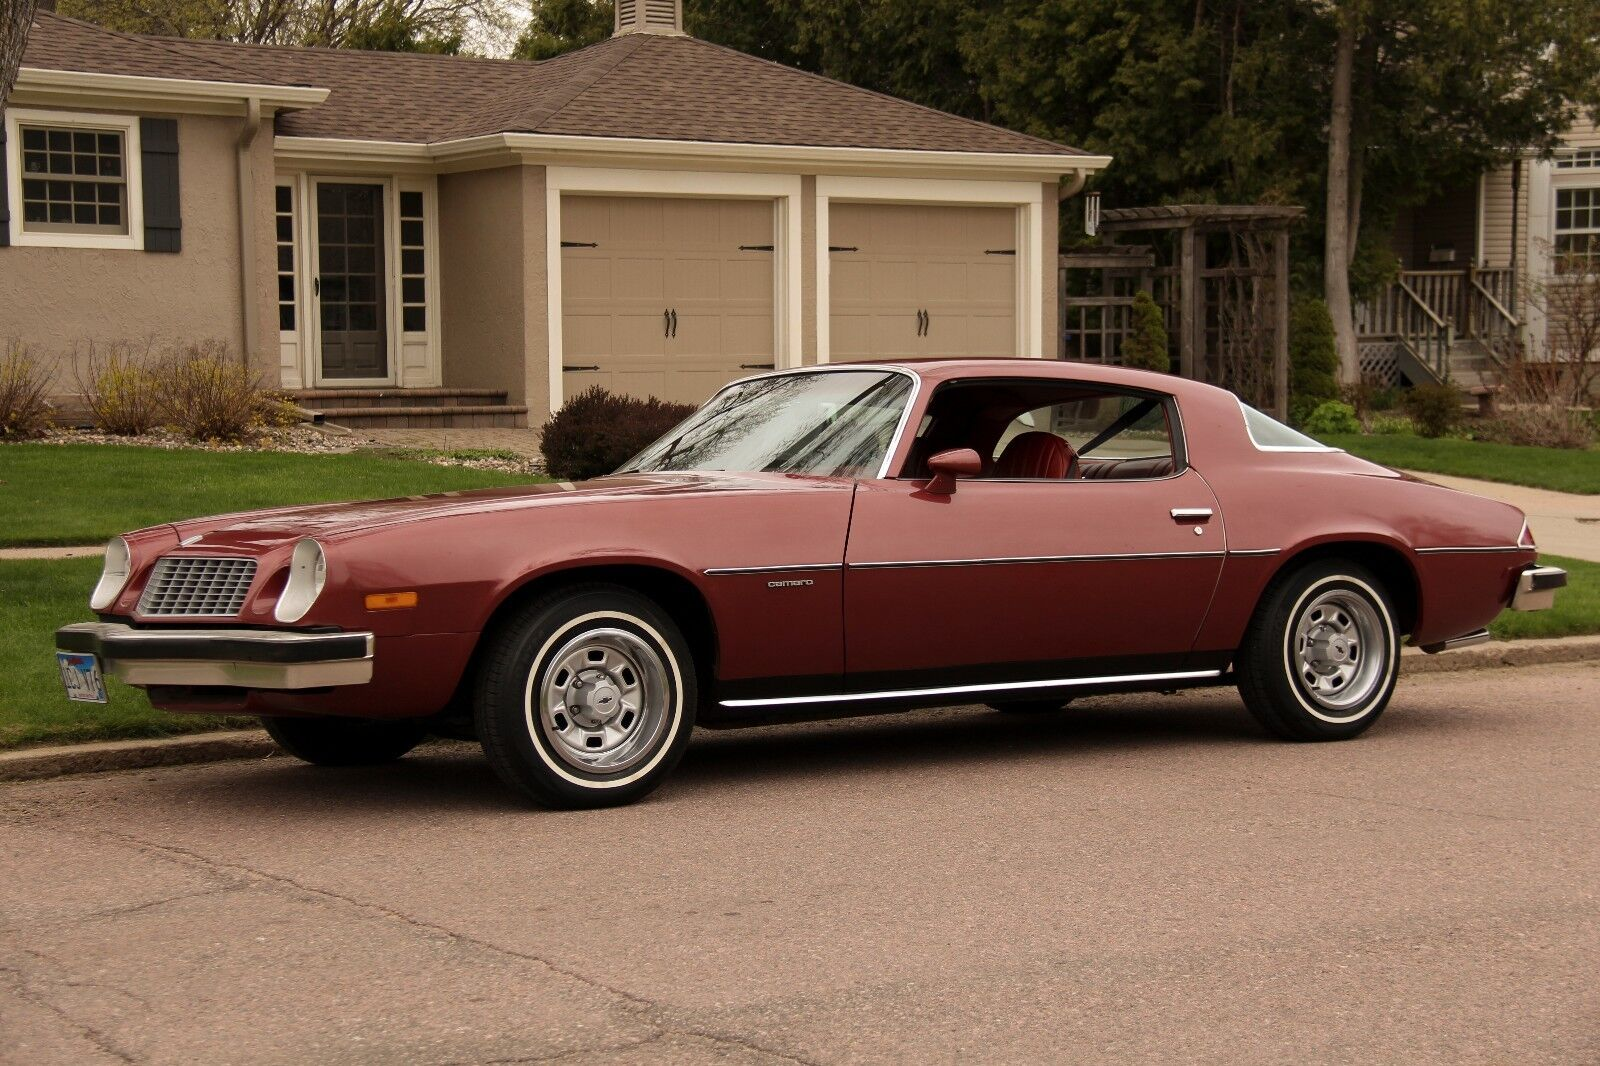 1976 Chevrolet Camaro - Firethorn Red (36)